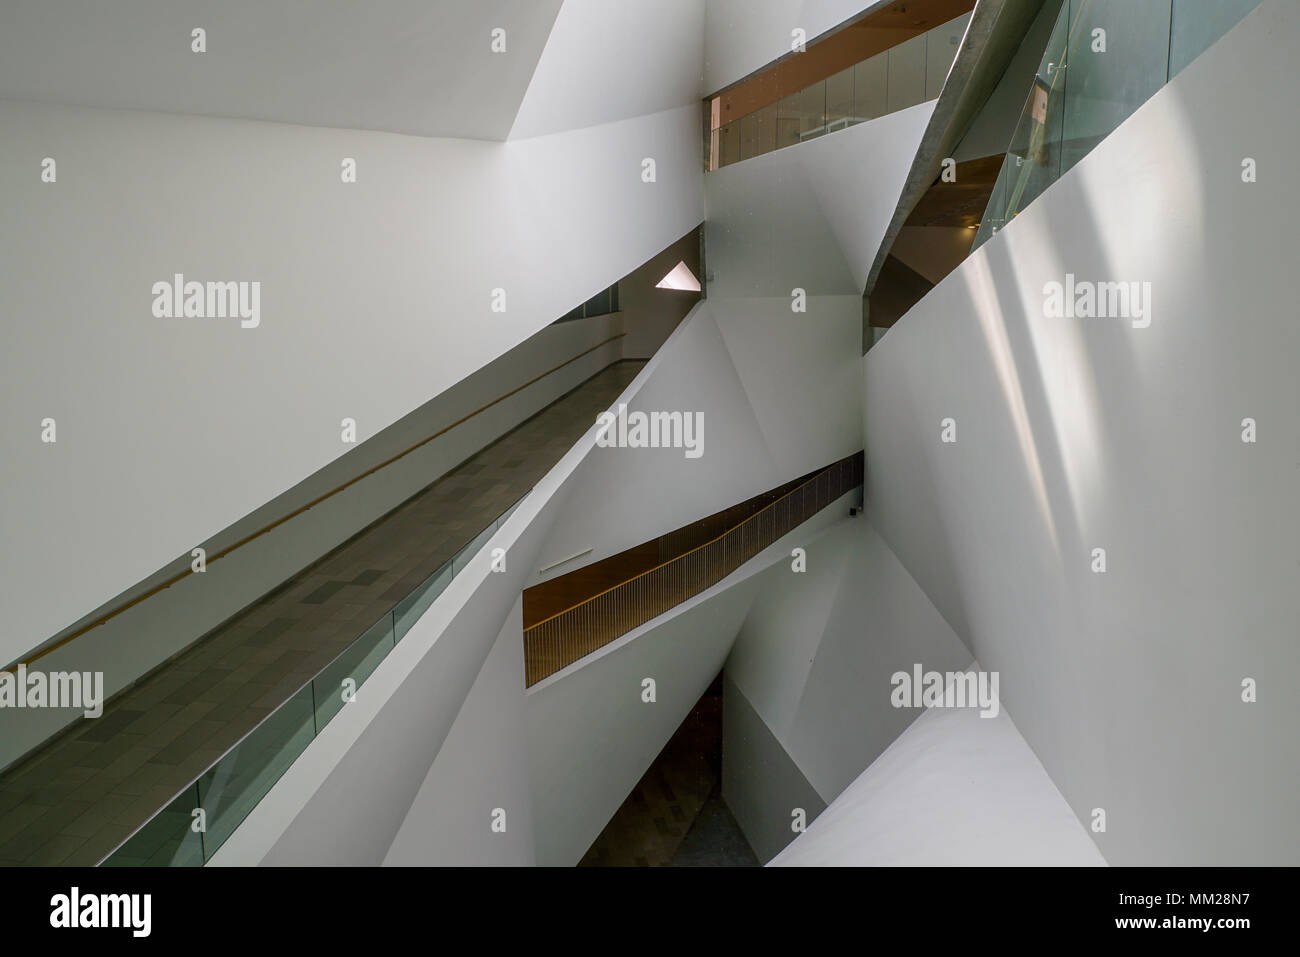 Interior of the Tel Aviv Museum of Art. Tel Aviv, Israel. Abstract Architecture - Stock Image